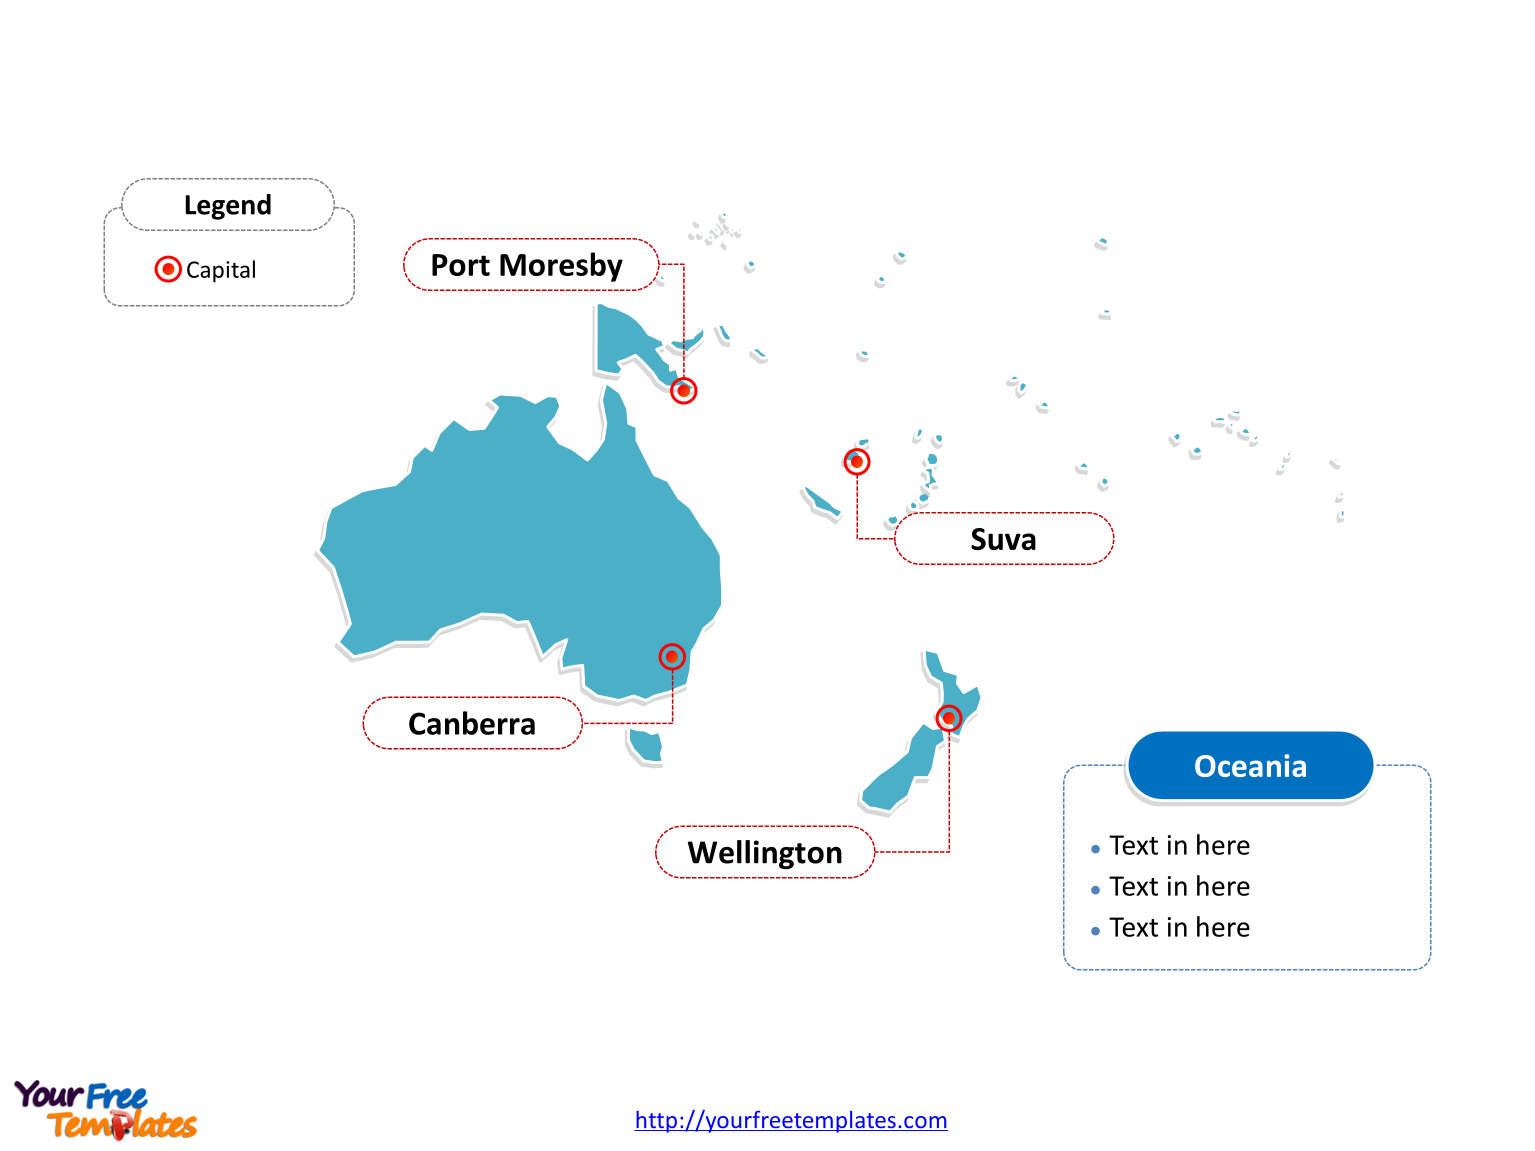 Oceania Outline map labeled with major capitals